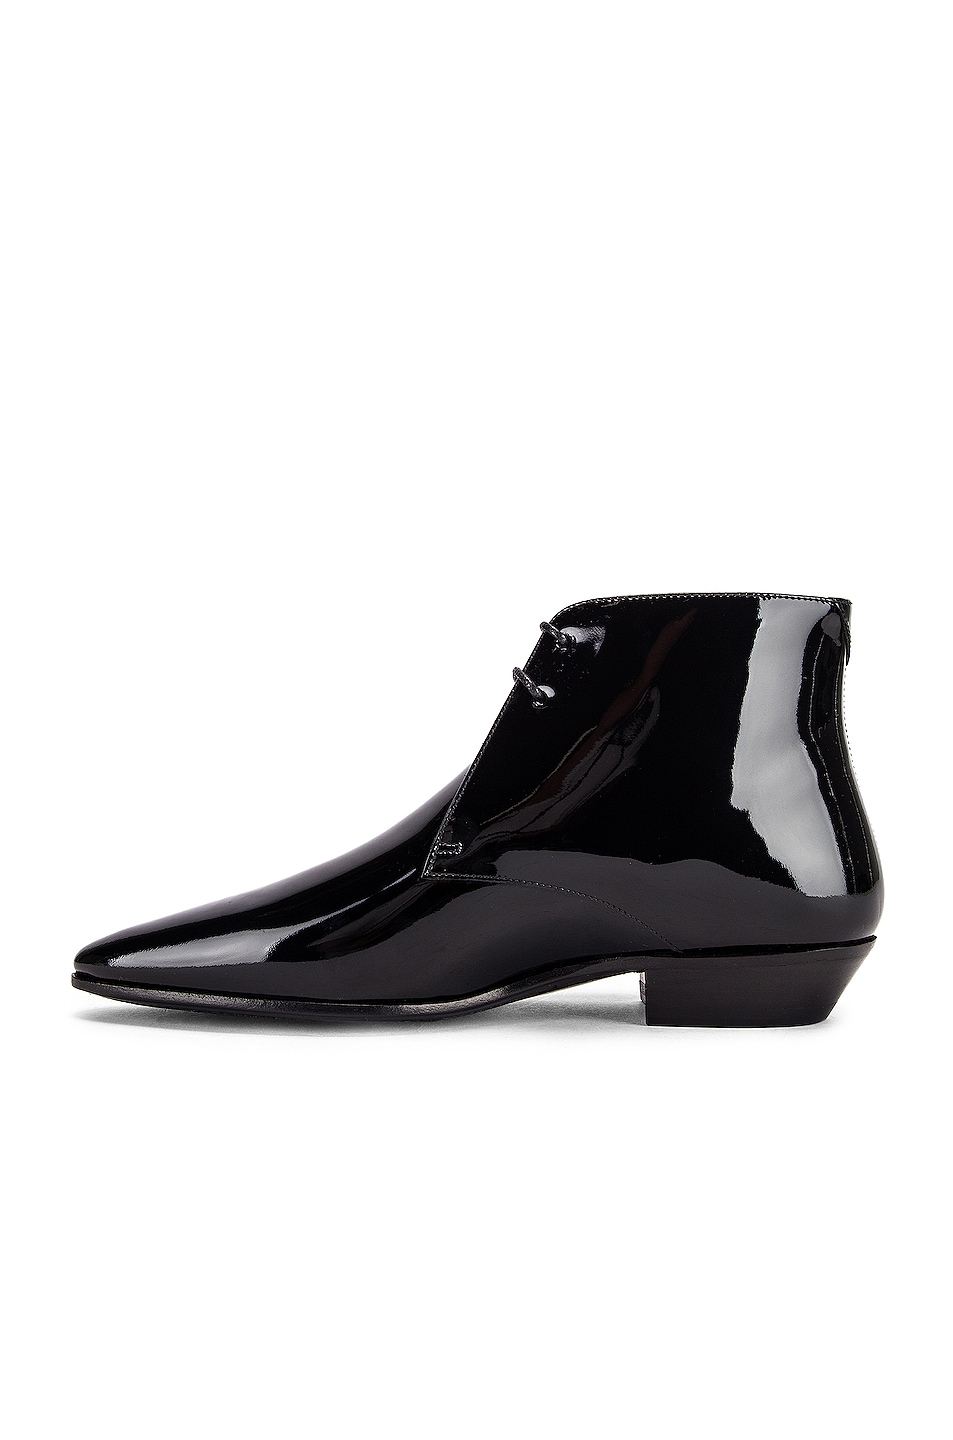 Image 5 of Saint Laurent Jonas Lace Up Patent Booties in Black